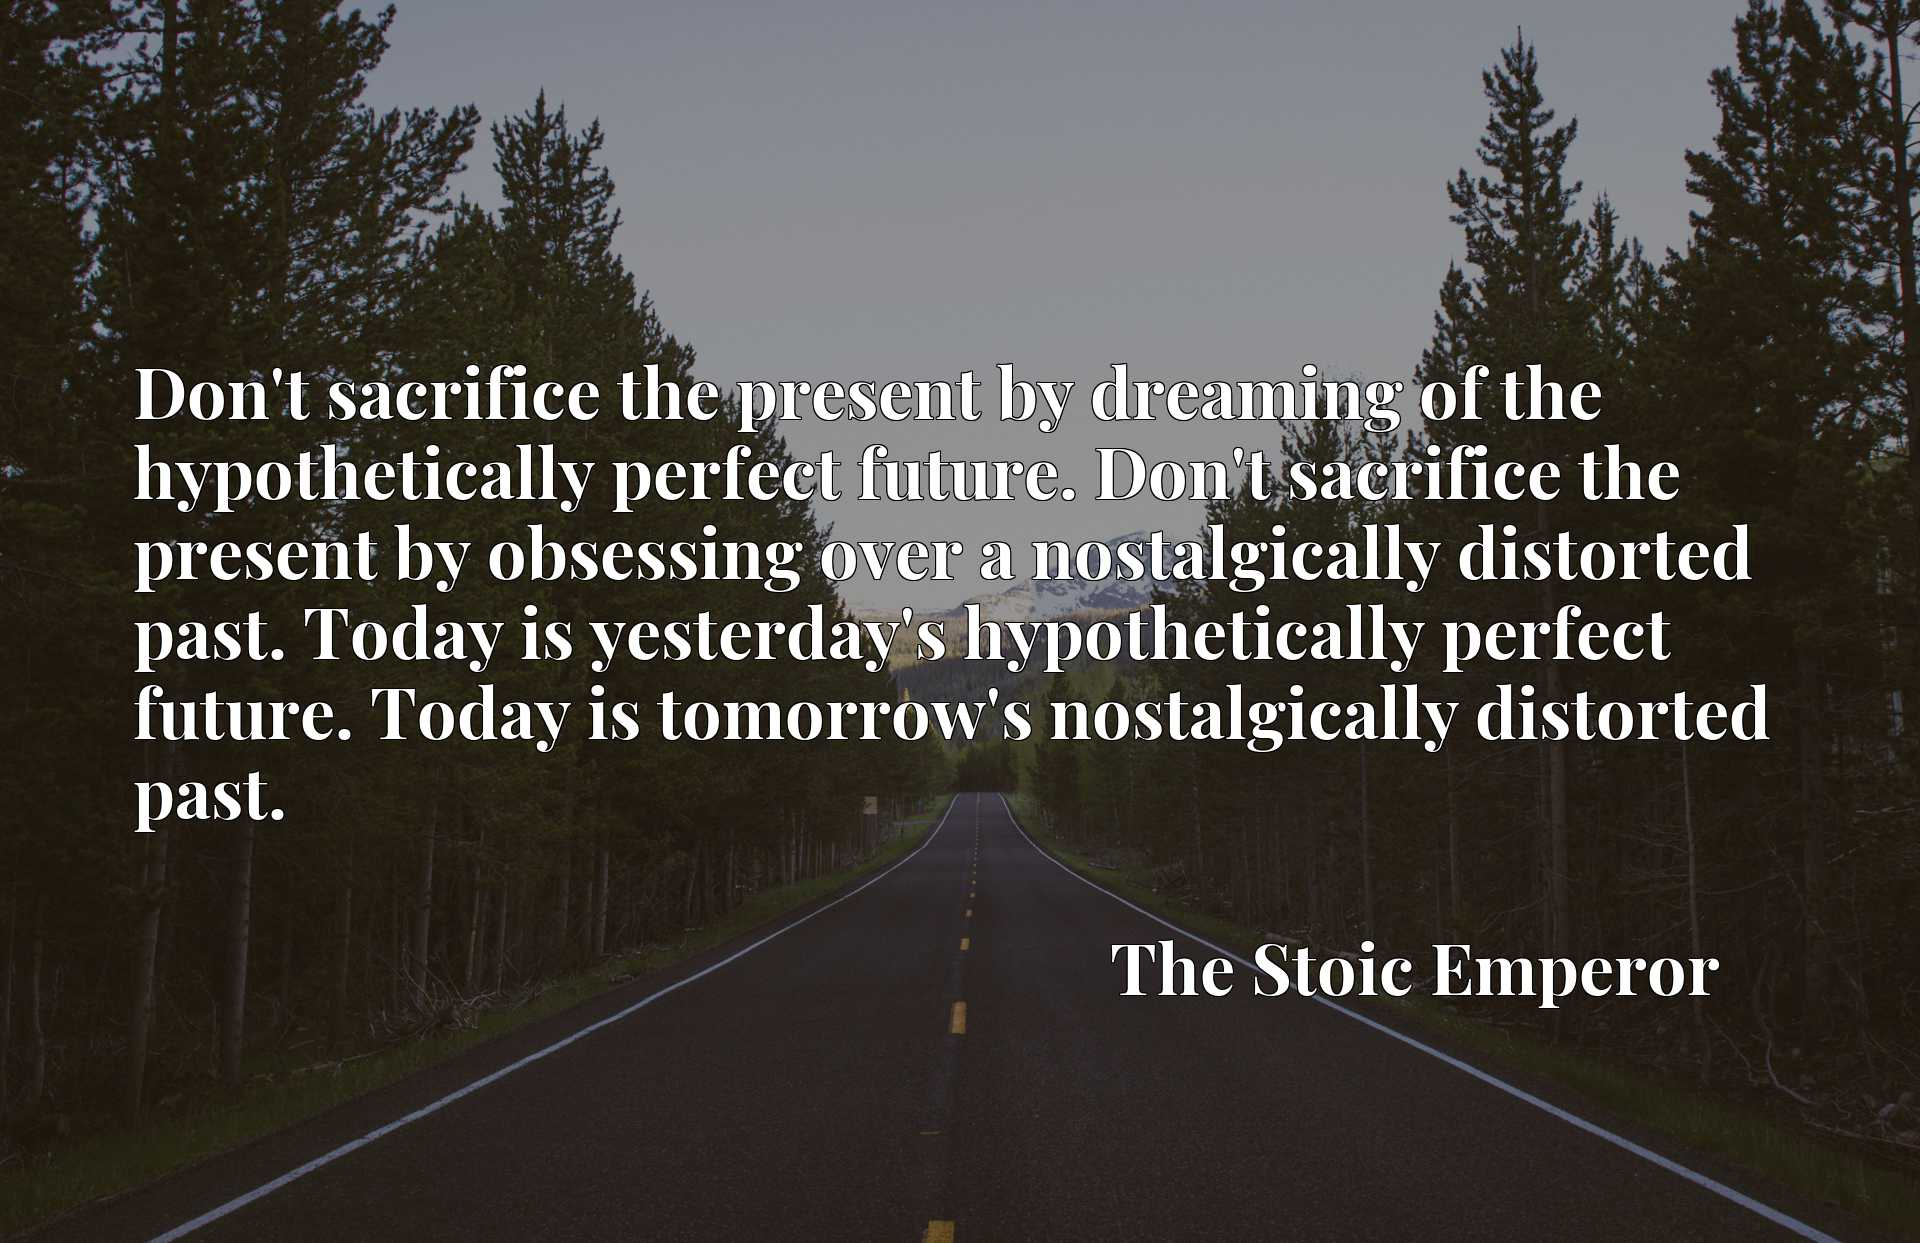 Don't sacrifice the present by dreaming of the hypothetically perfect future. Don't sacrifice the present by obsessing over a nostalgically distorted past. Today is yesterday's hypothetically perfect future. Today is tomorrow's nostalgically distorted past.